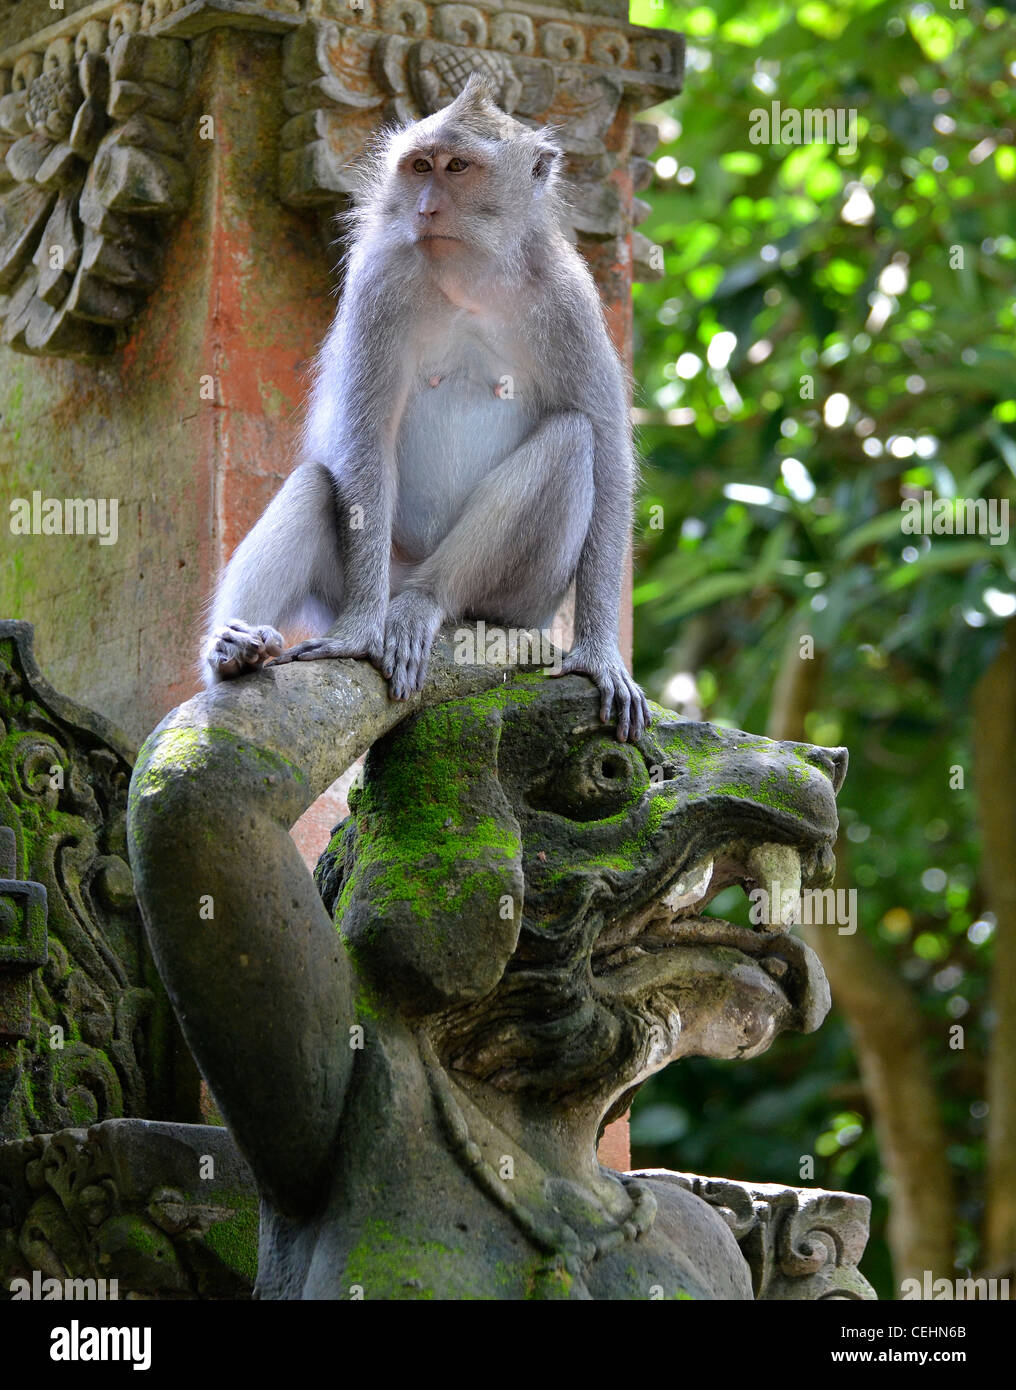 Monkeys of the Macaque family in the Ubud Monkey Forest - Stock Image